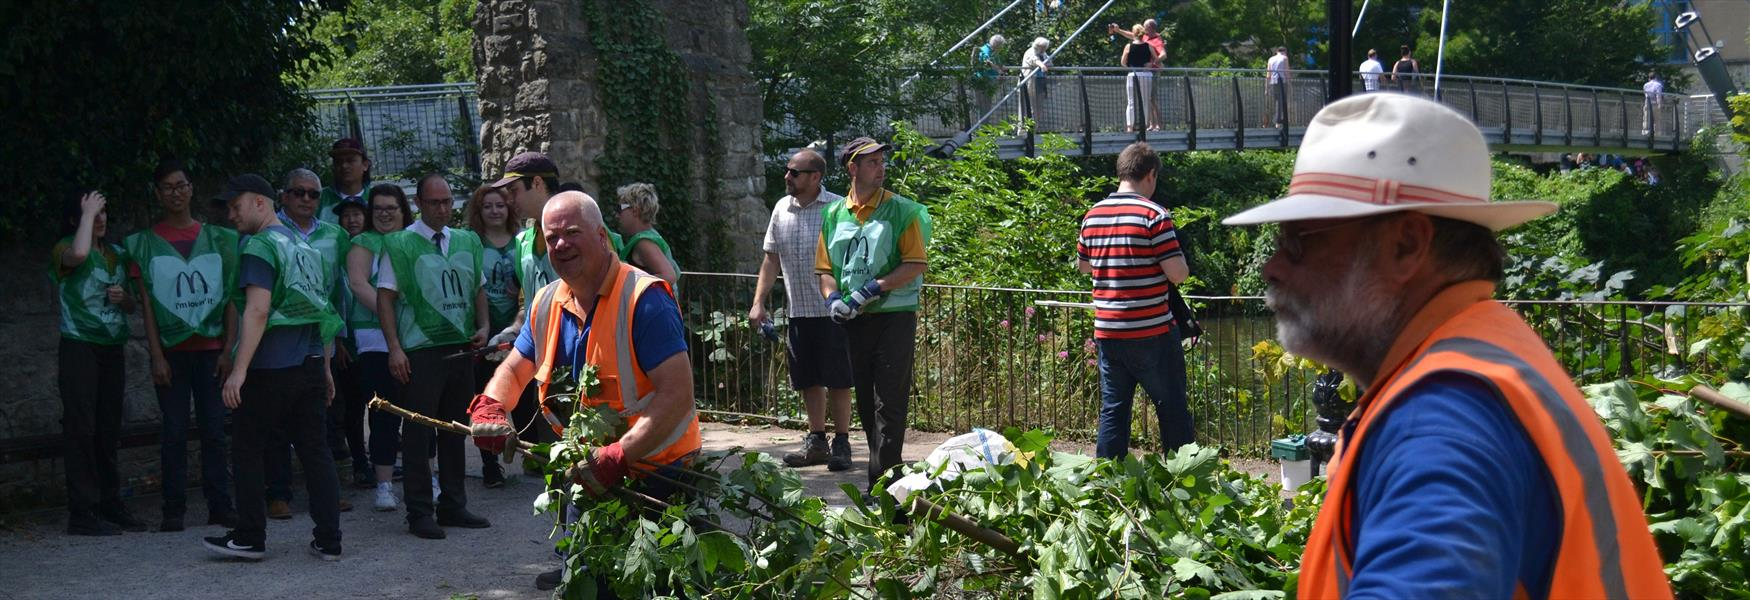 Maidstone River Park Partnership organise a clear up with volunteers